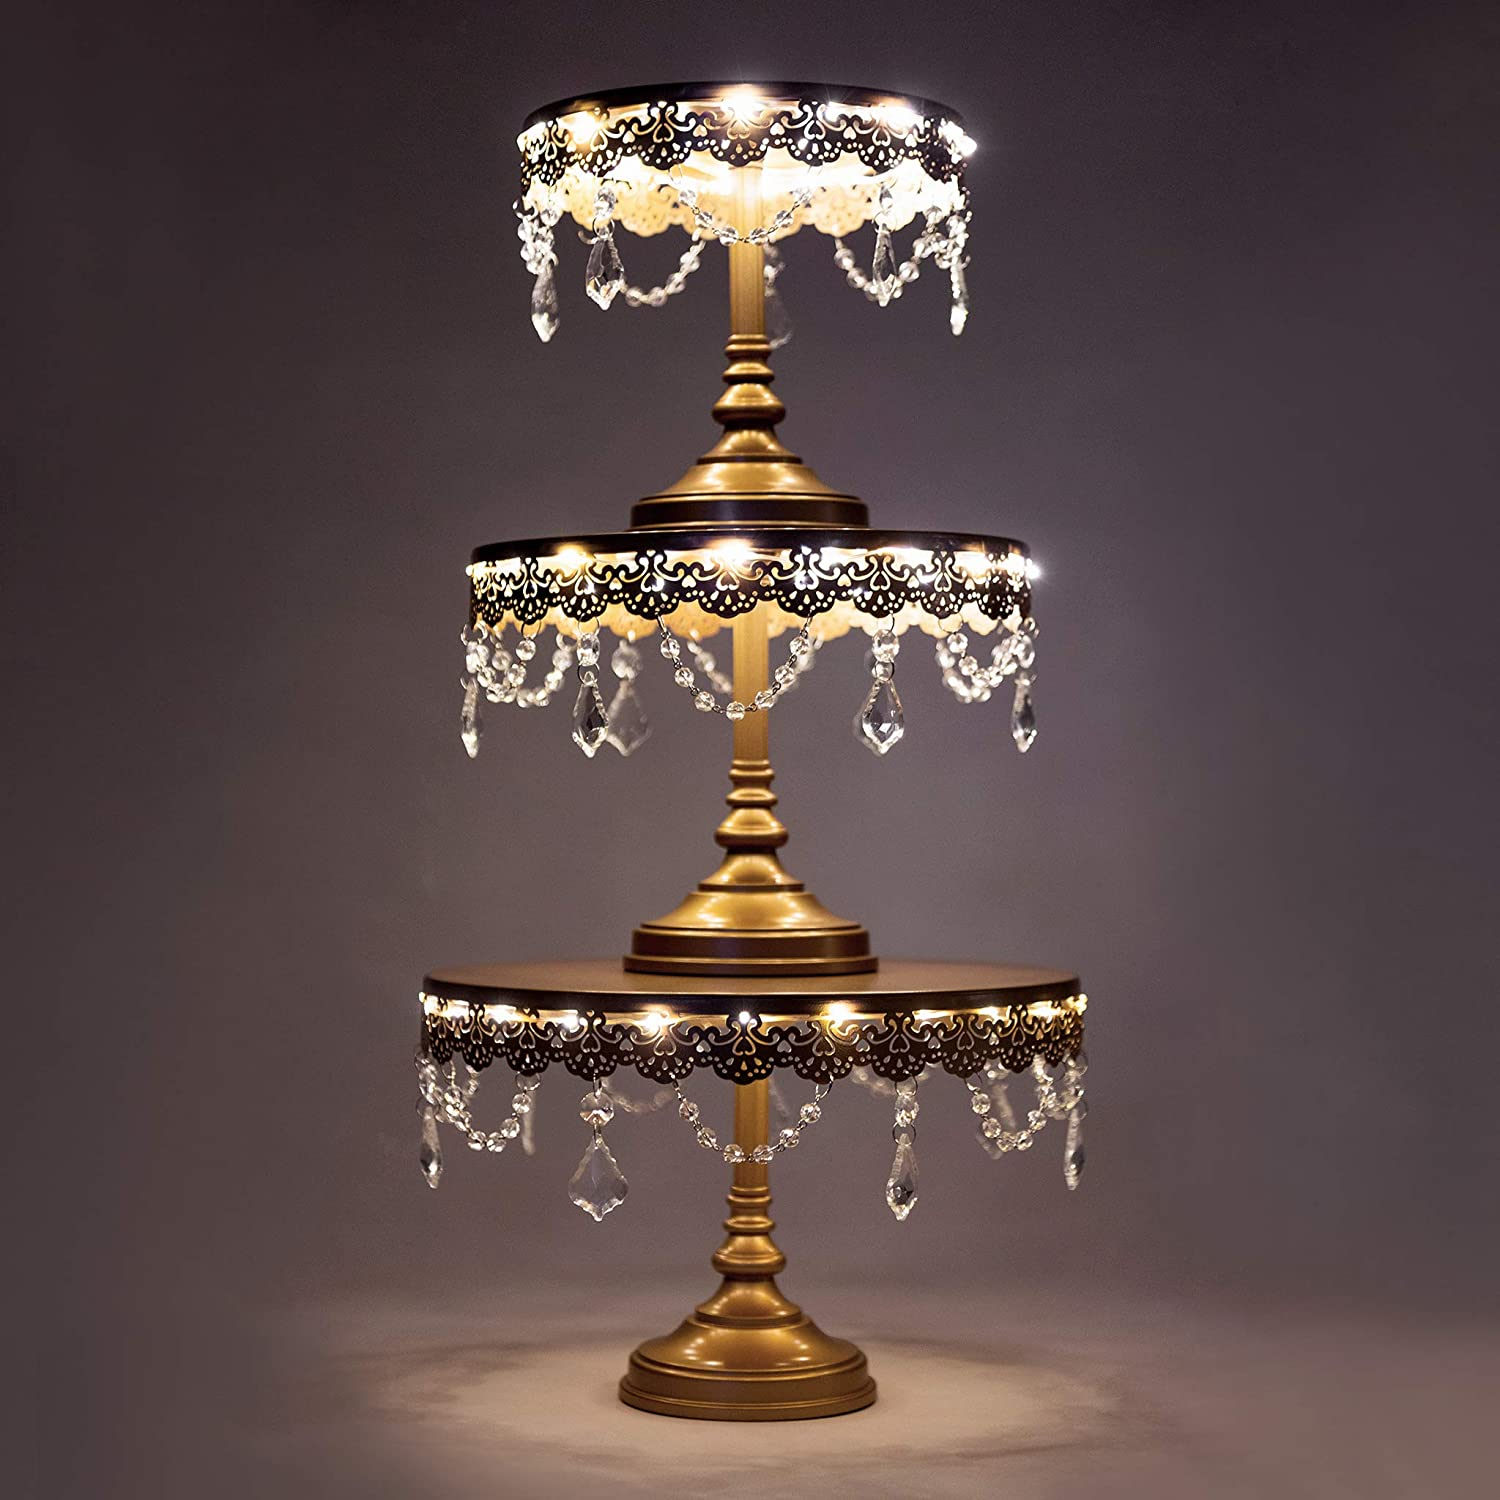 Amalfi Decor Cake Stand Set of 3 Pack with LED Lights, Dessert Cupcake Pastry Candy Plate for Wedding Event Birthday Party, Round Chargeable Metal Pedestal Holder, Gold